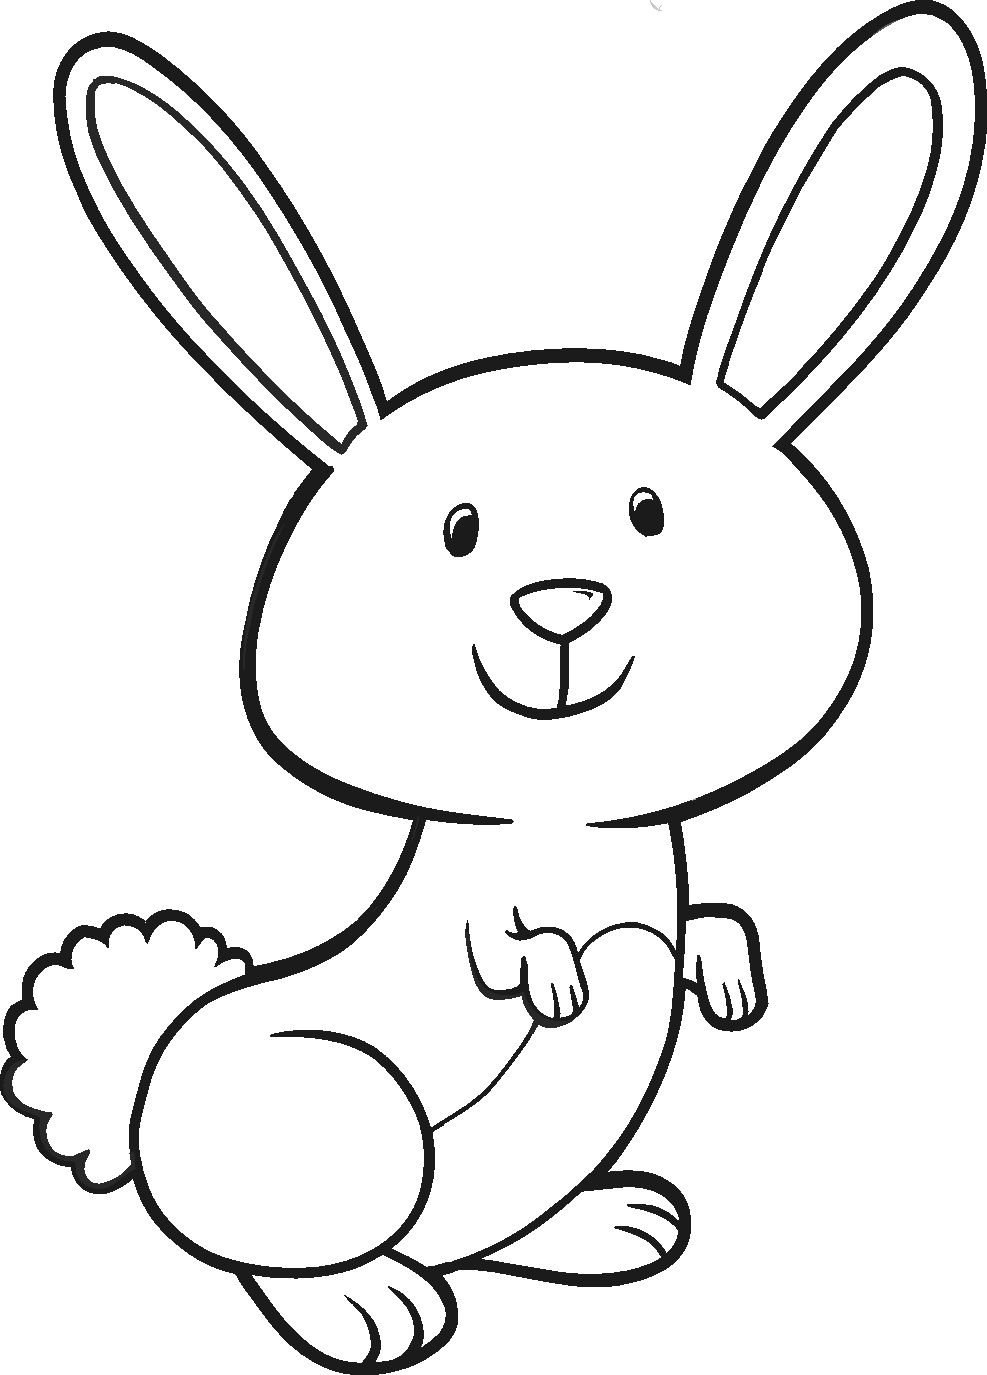 Image From Http Www Valentinesdaycardsprintables Com Wp Content Uploads 2015 03 Easter Bunn Bunny Coloring Pages Easter Coloring Pages Easter Bunny Colouring